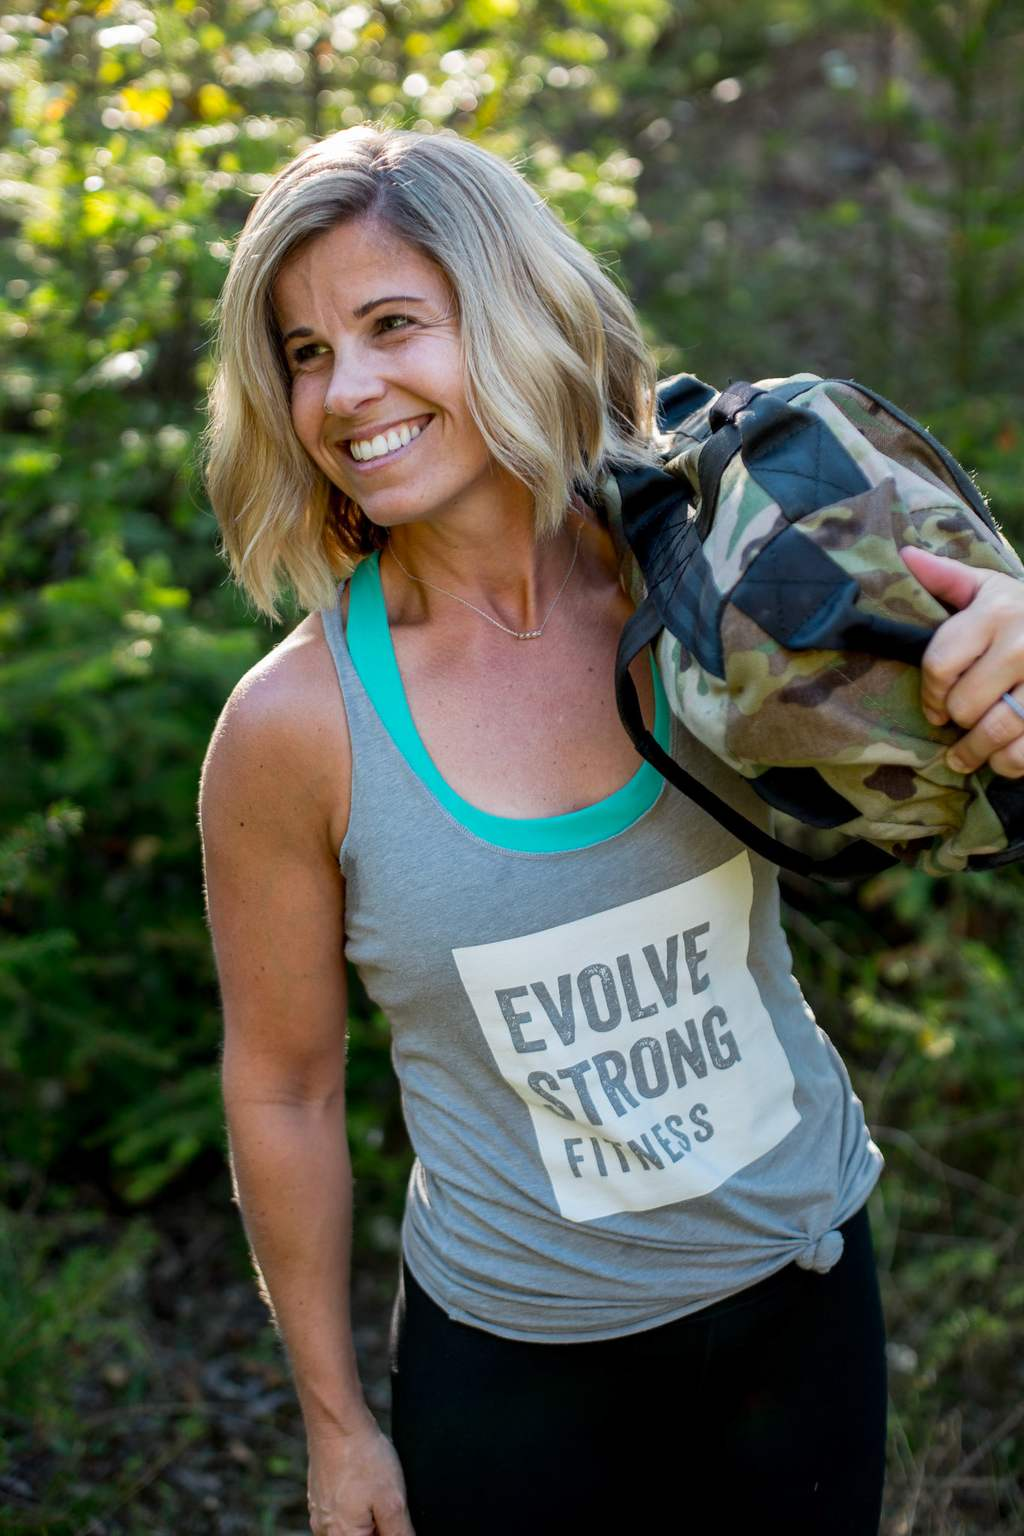 EVOLVE Strong Fitness coach Holly outdoor workout with sandbag